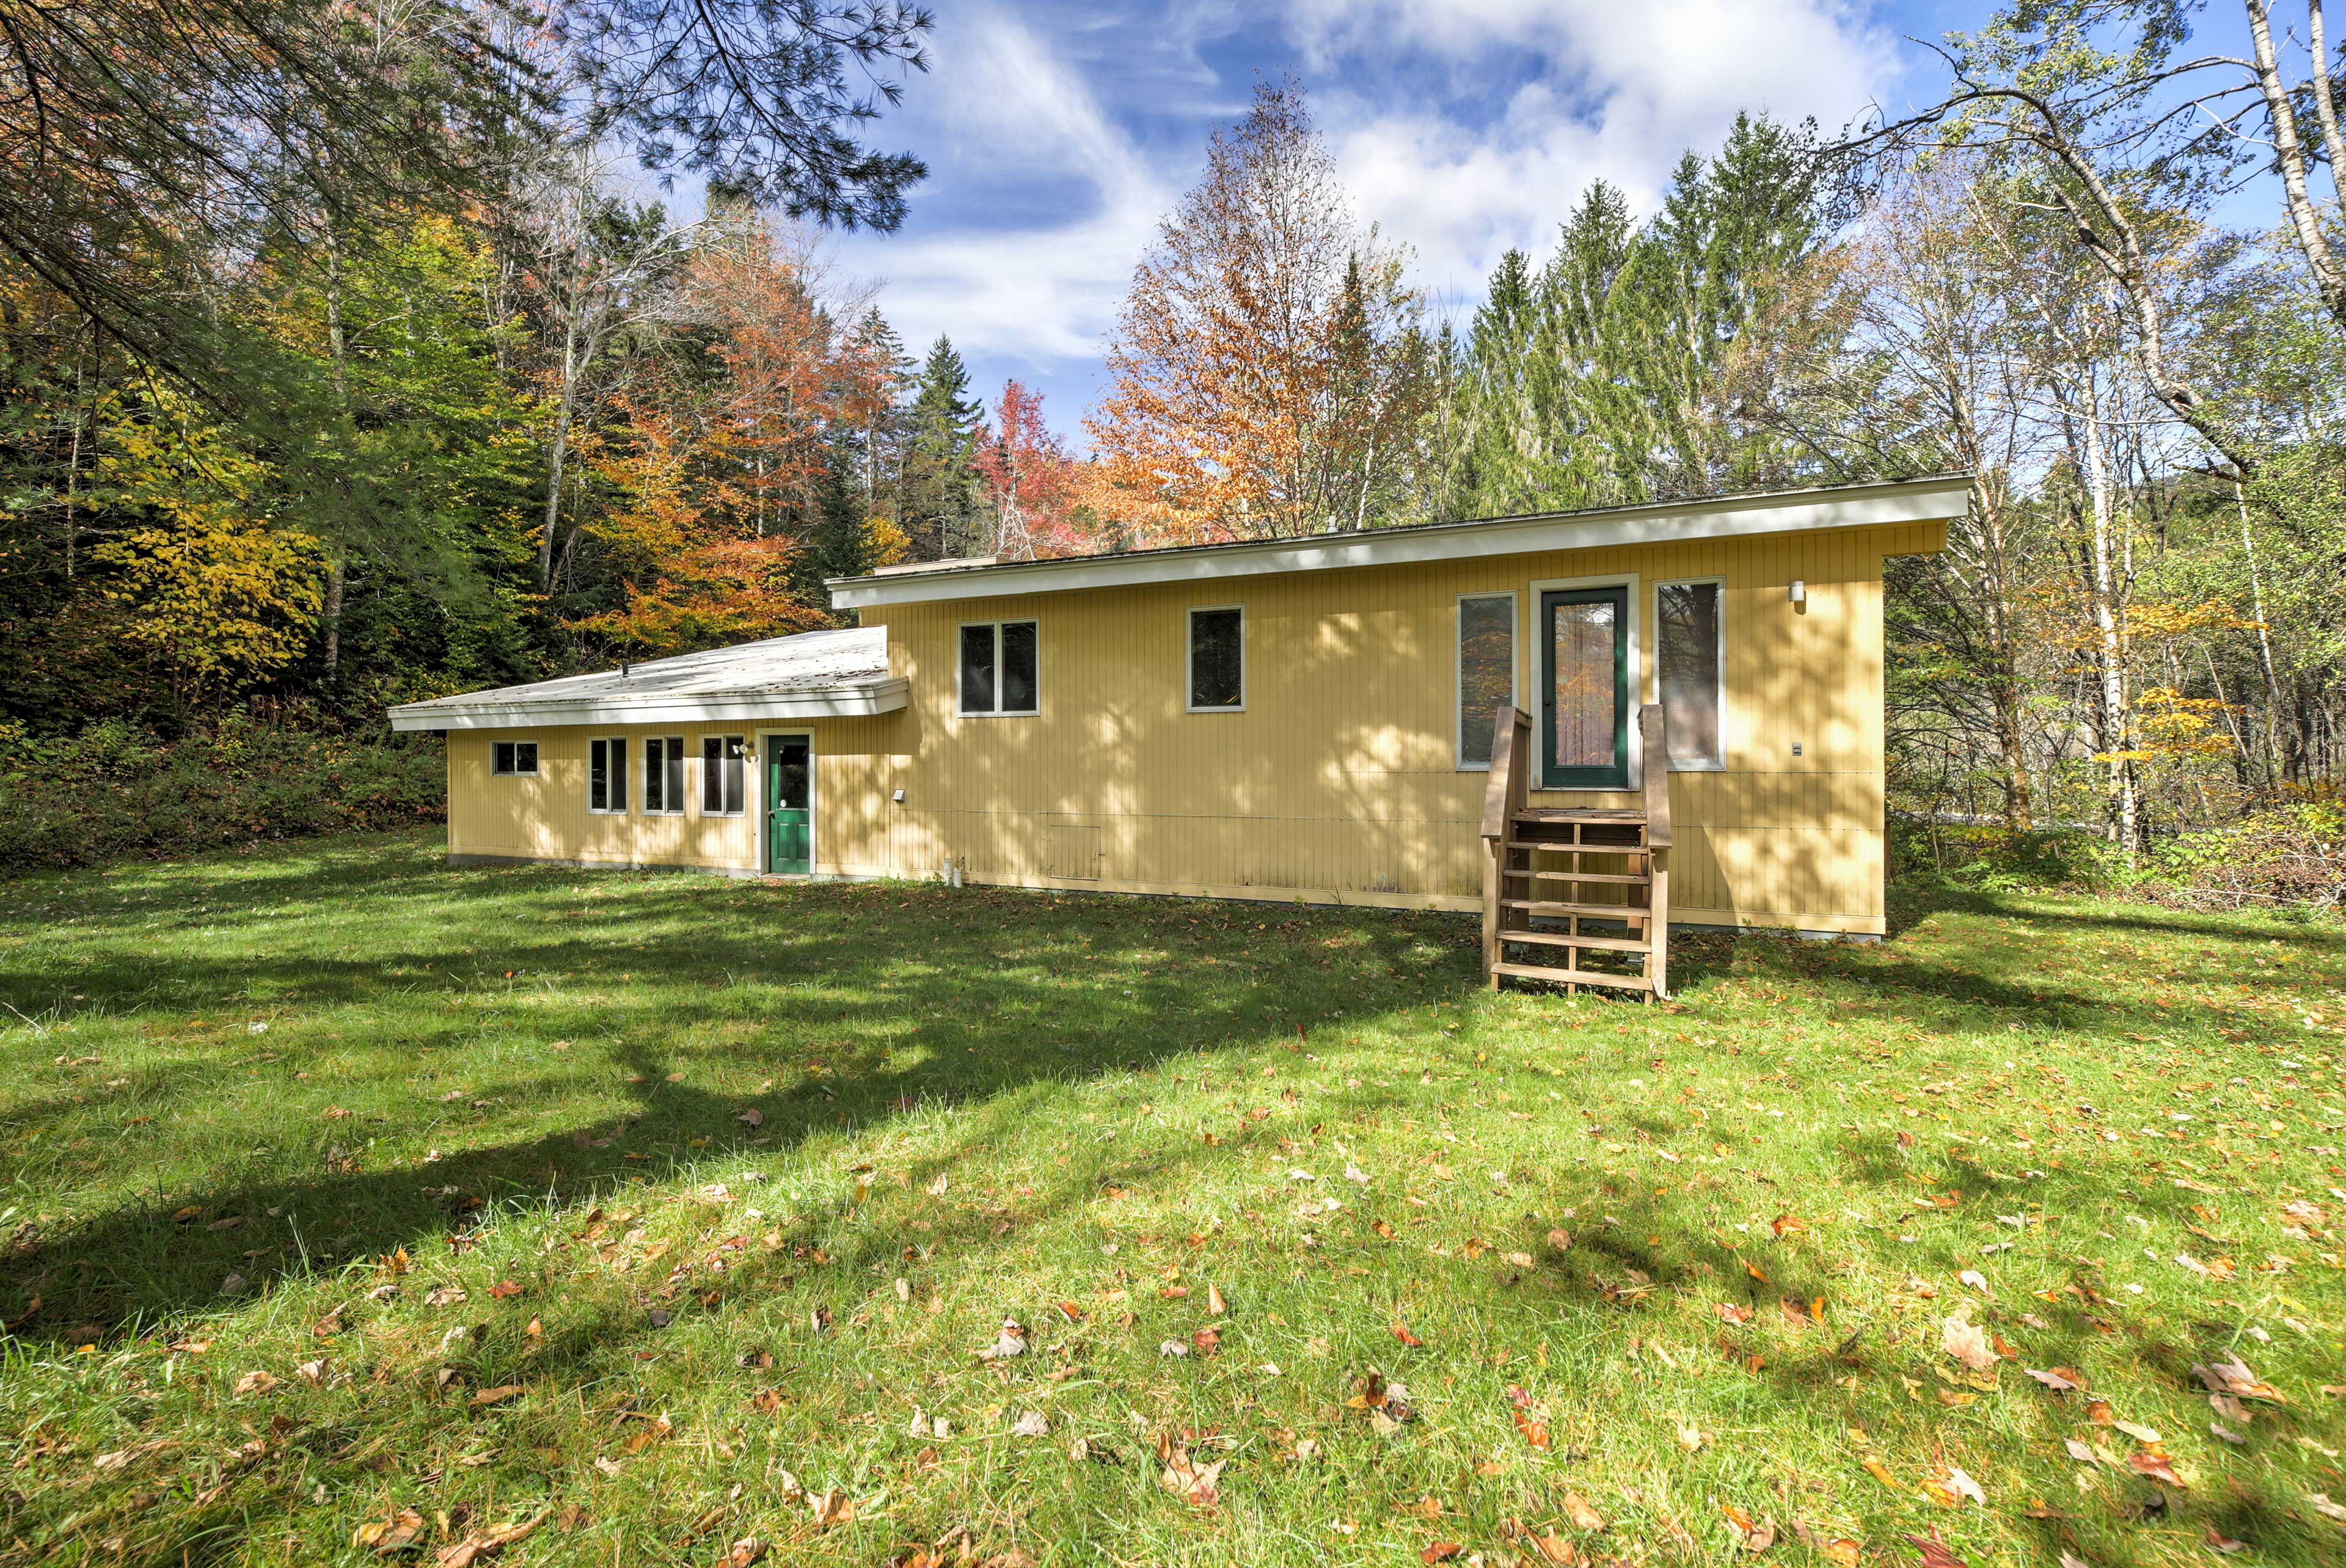 Explore this property along one of the hiking trails outside your door!